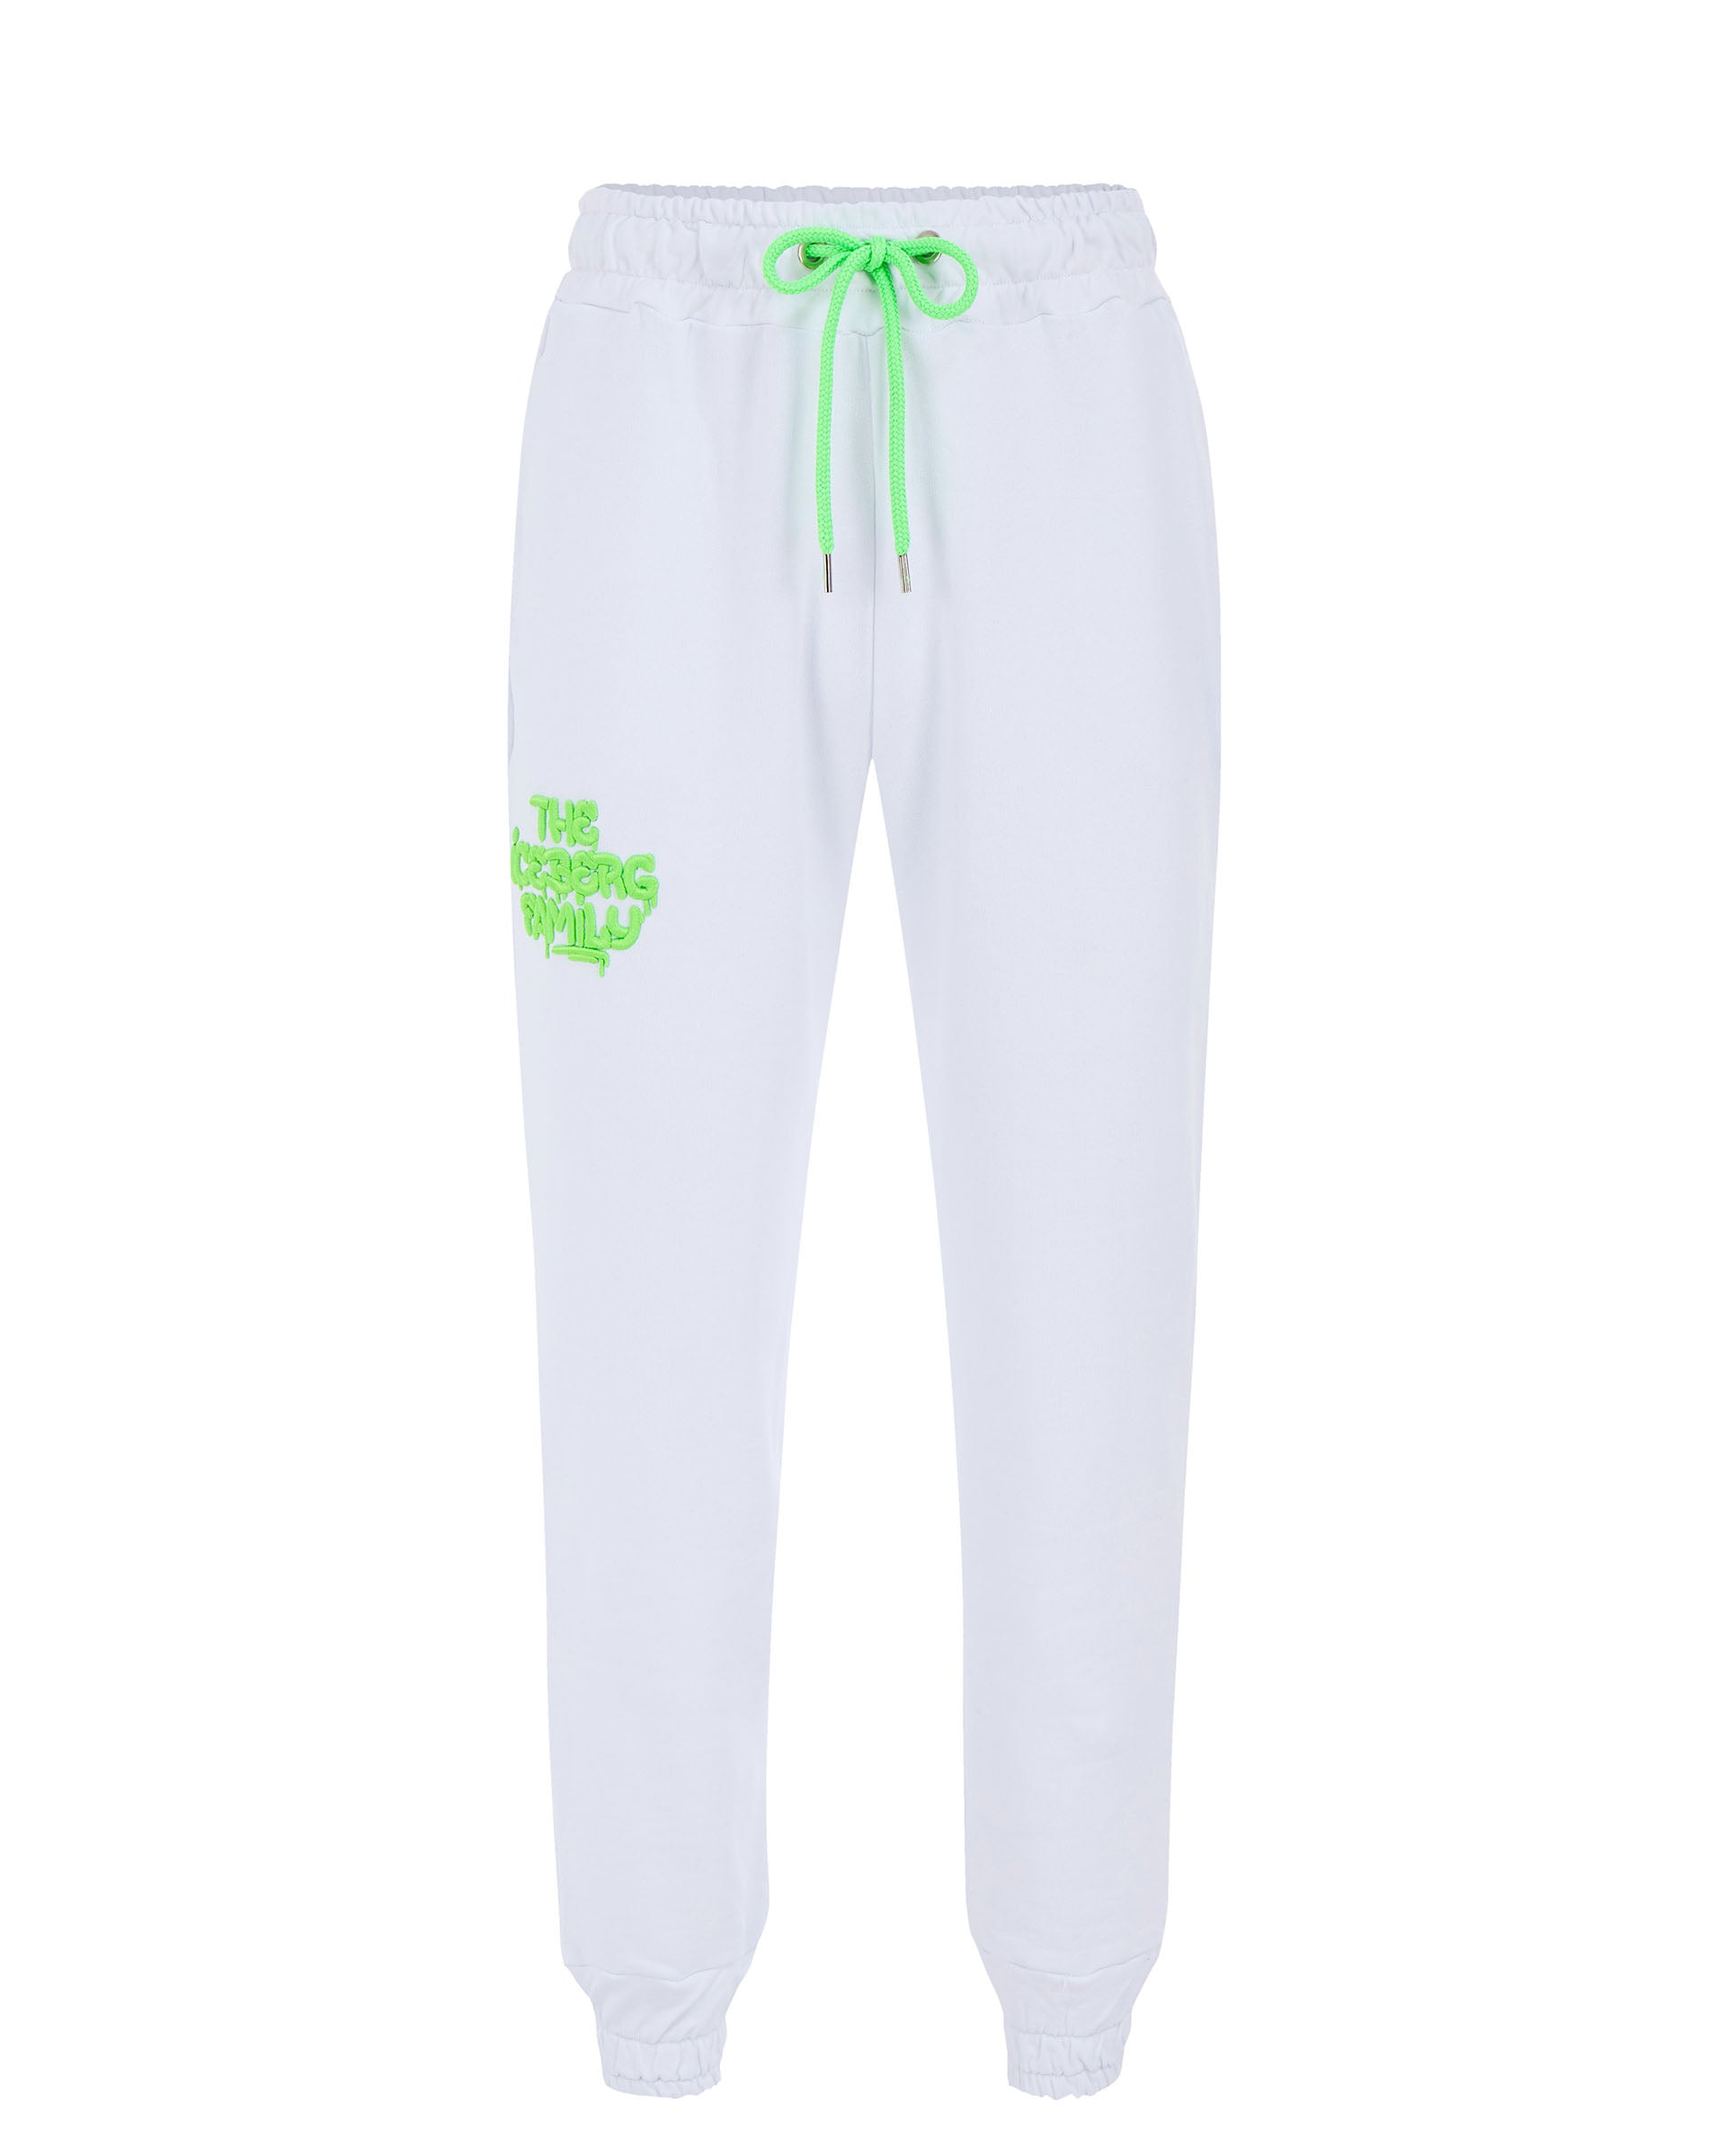 Pants Jogging Vandal White Green Fluo